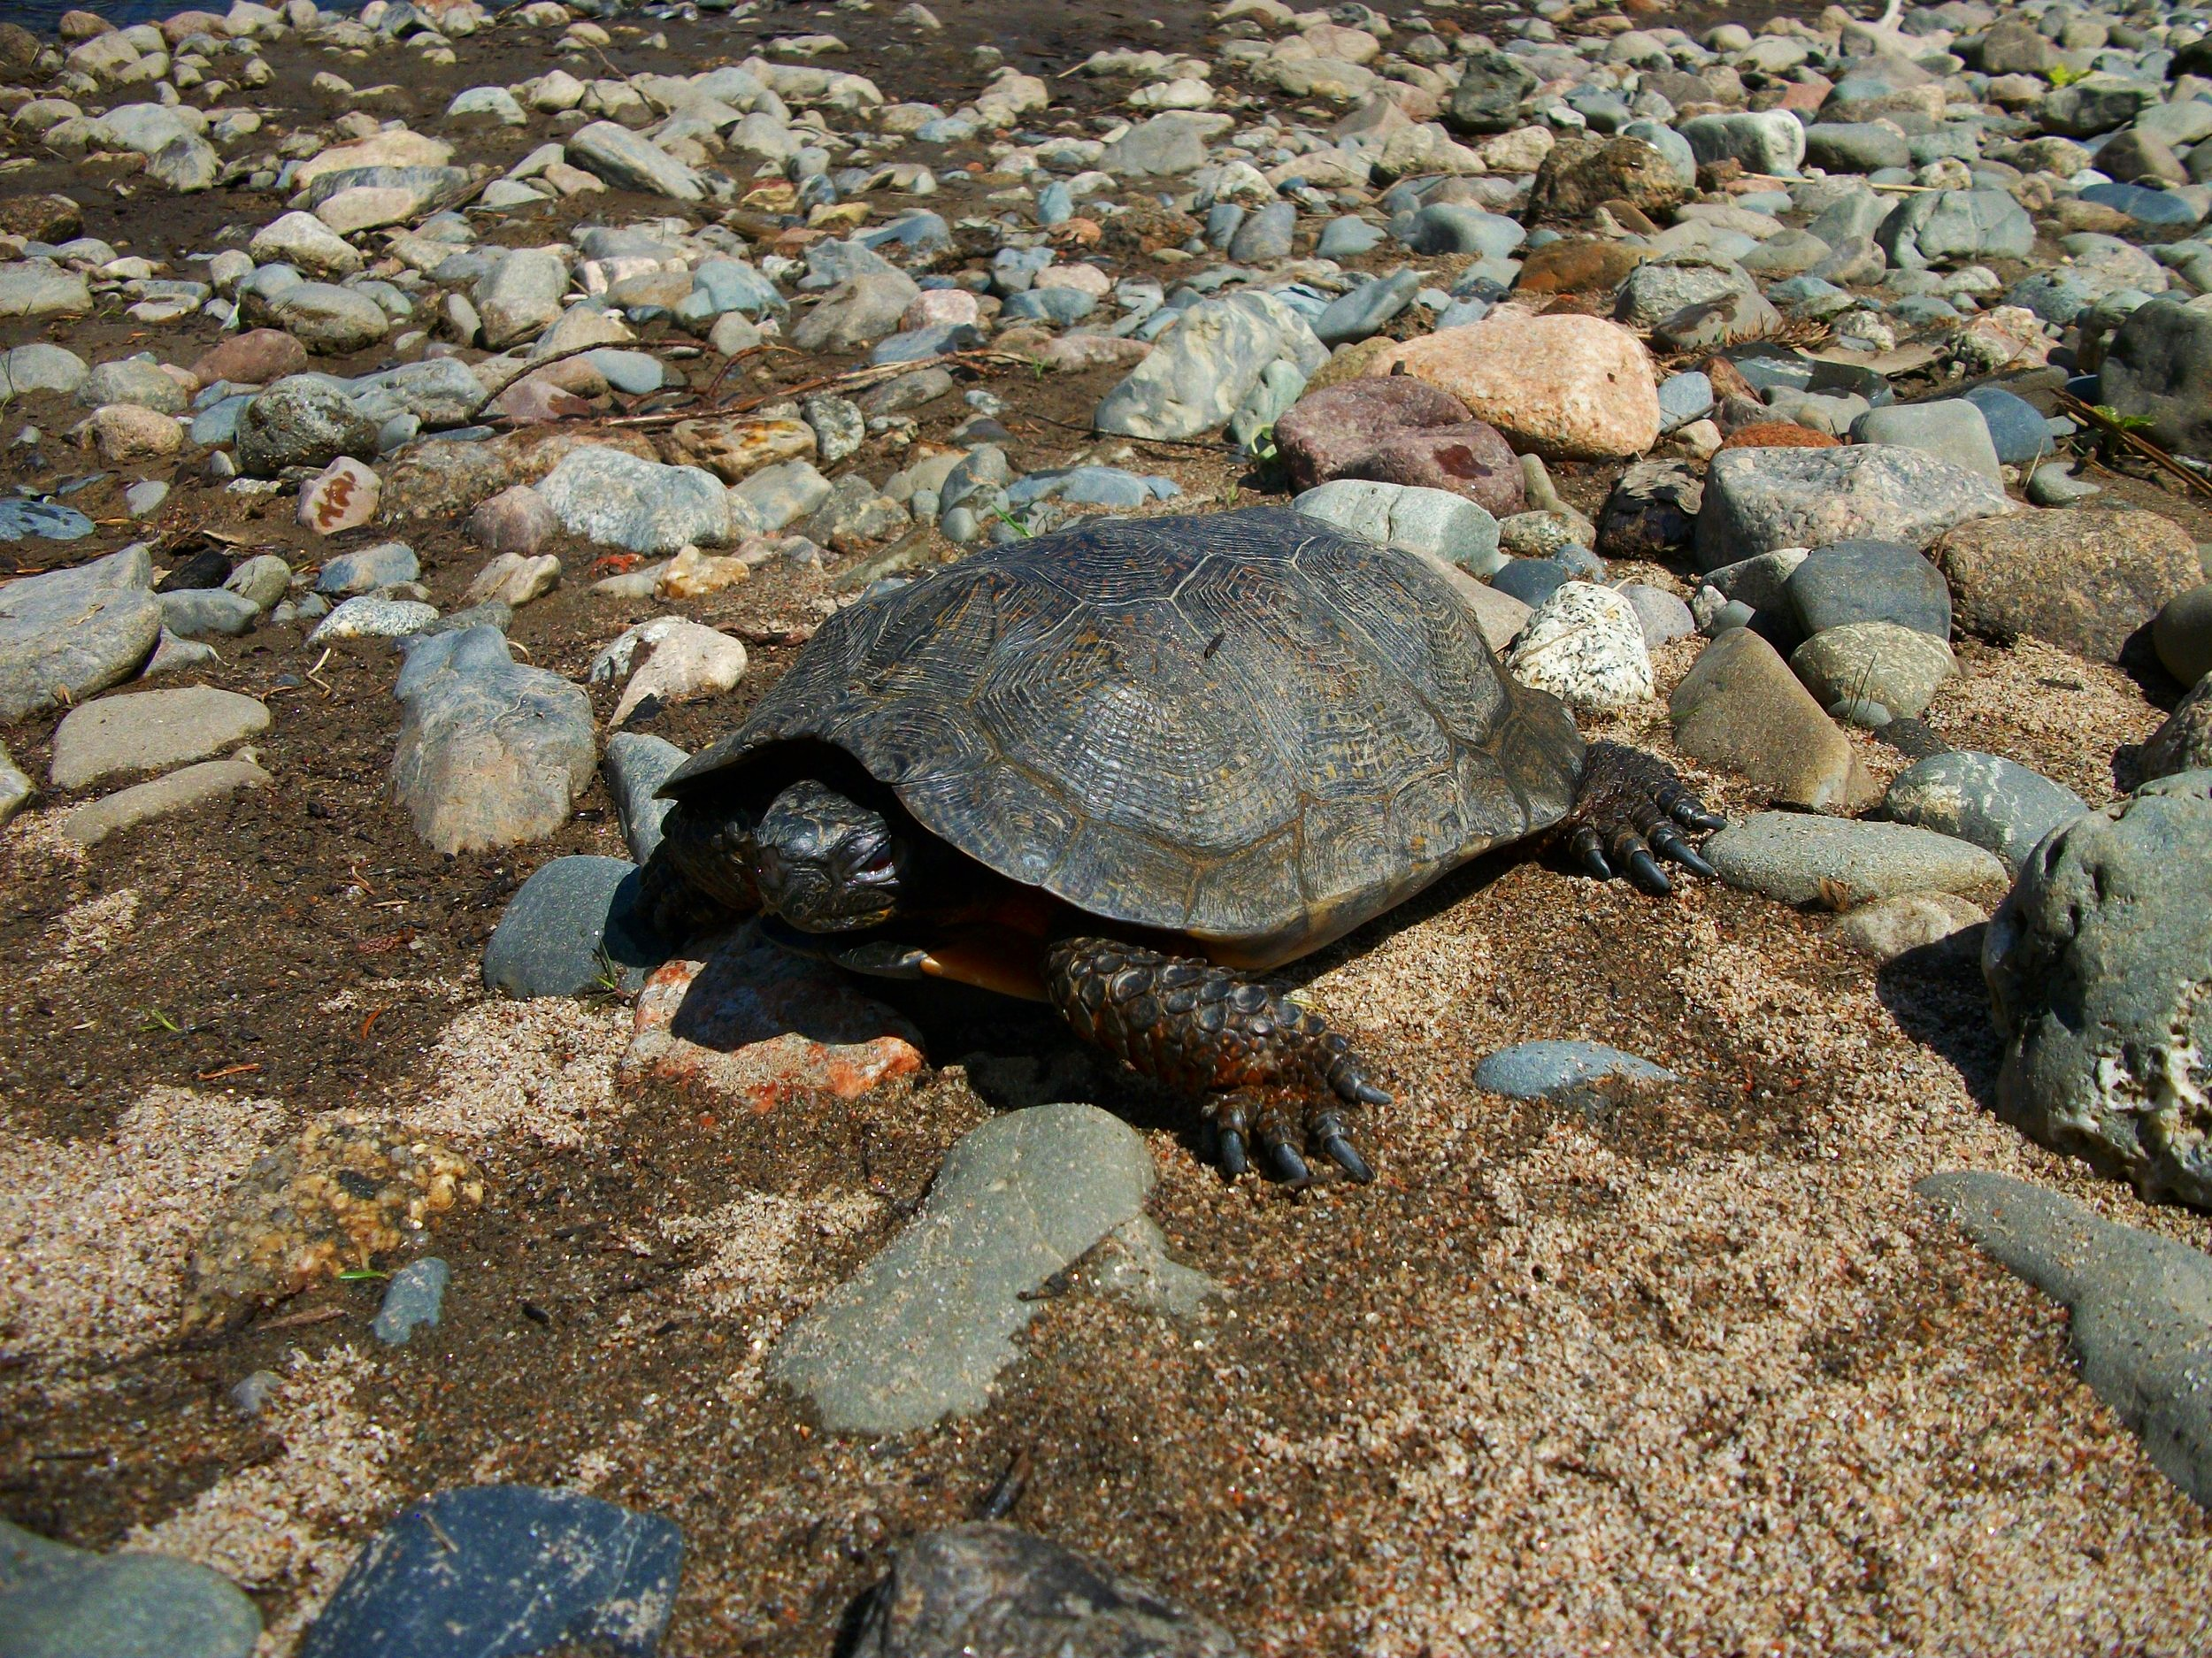 PROTECTING WOOD TURTLES -